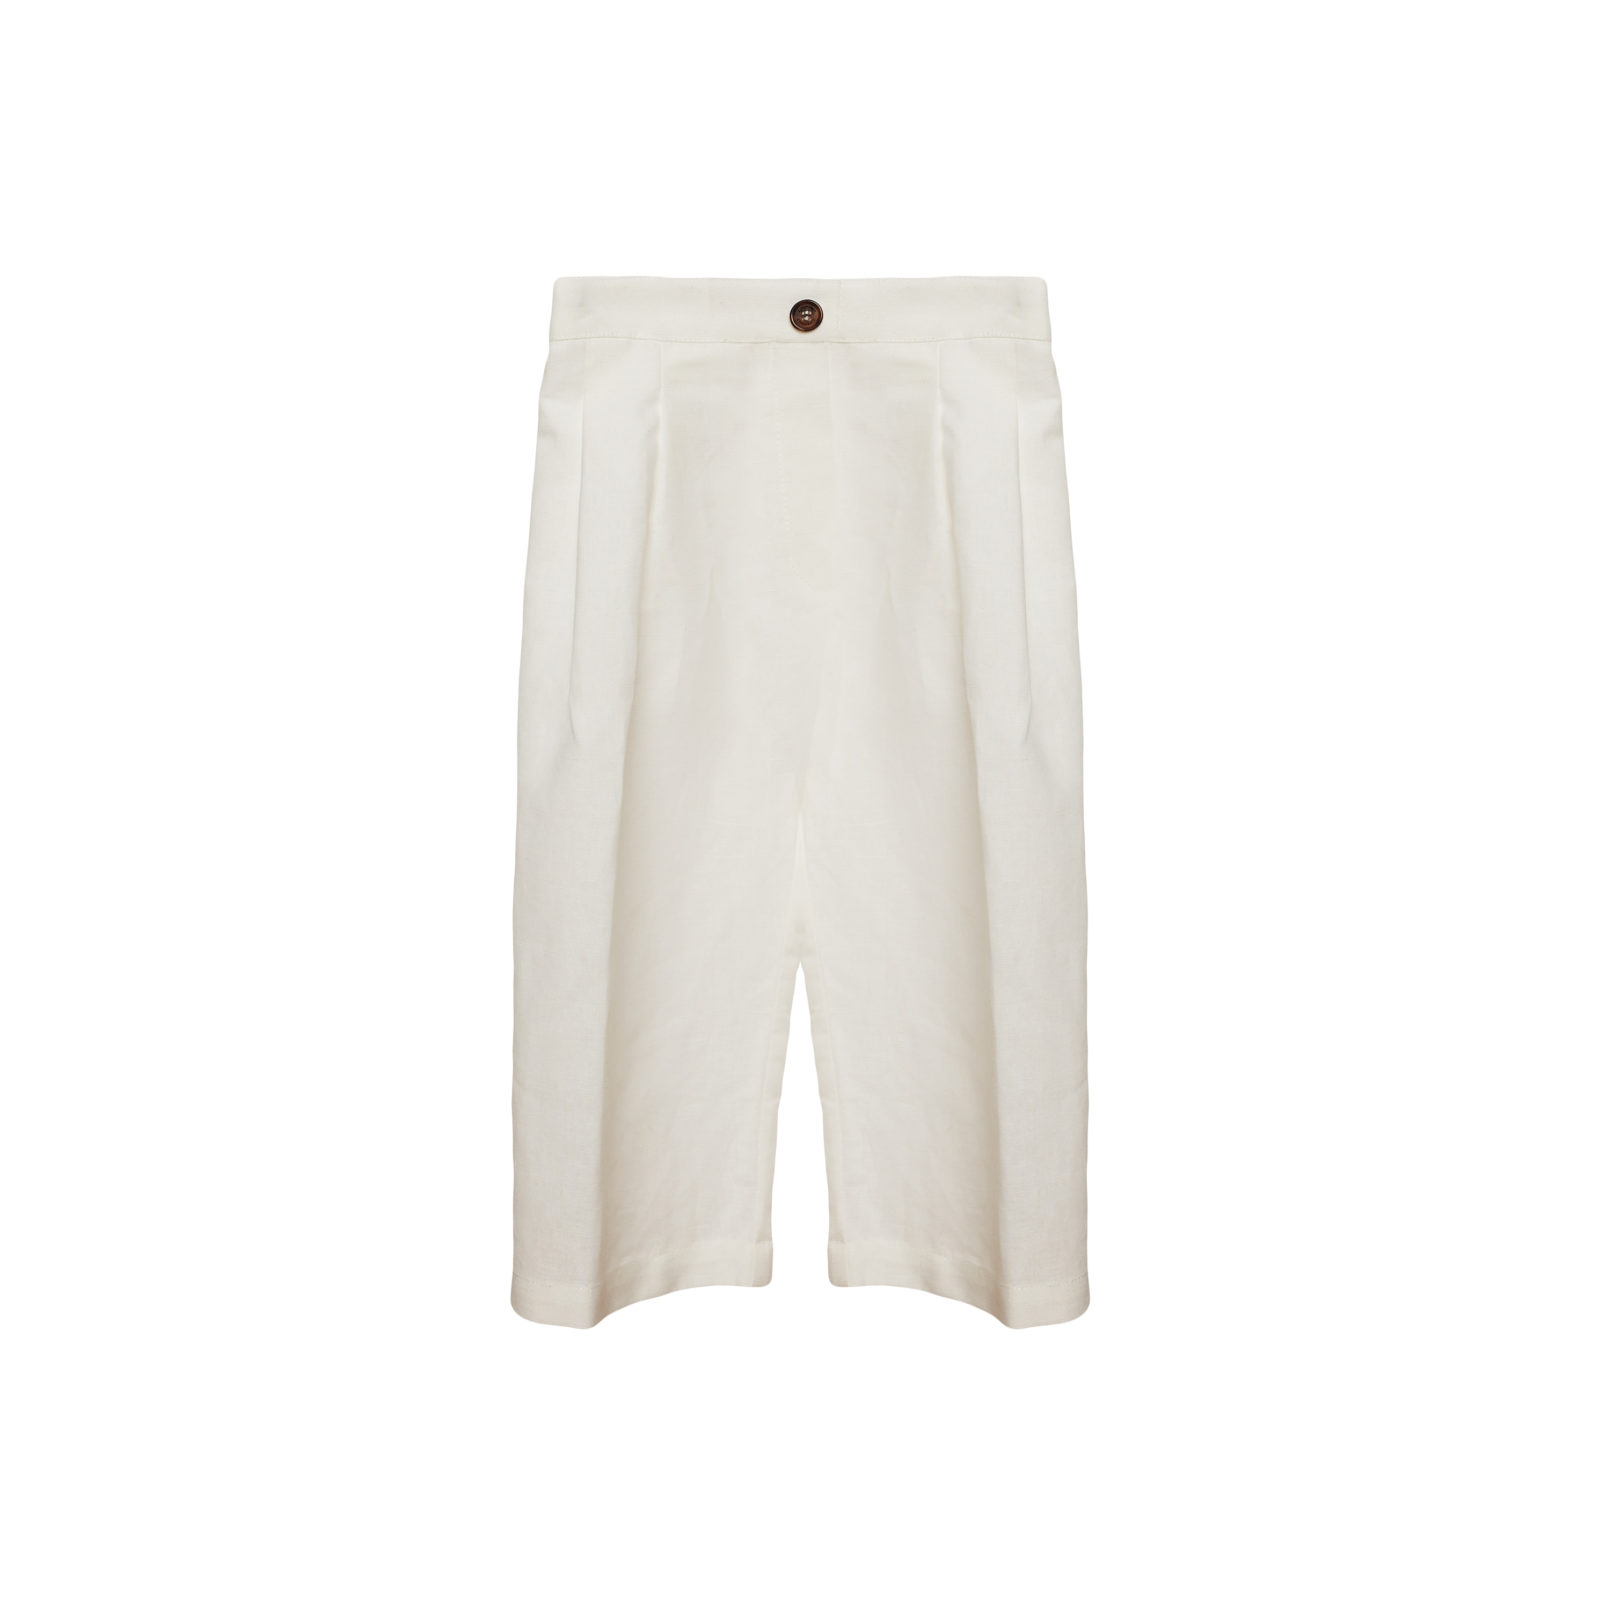 Linda Raff Collection -Beach Pants CORN KIDS White Linen